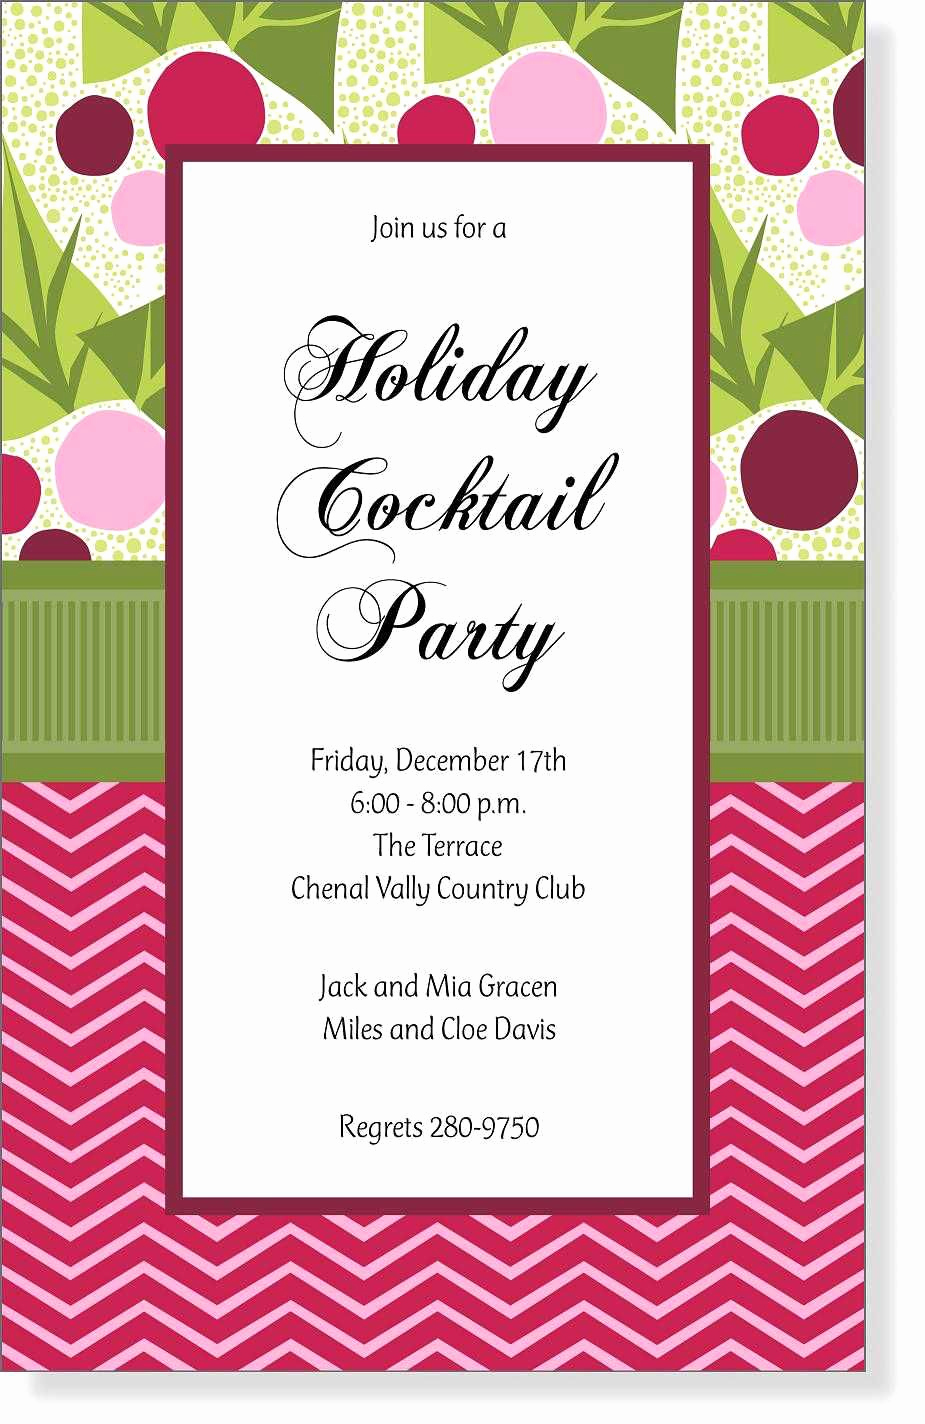 Open House Invitation Example Awesome Christmas Open House Invitation Wording